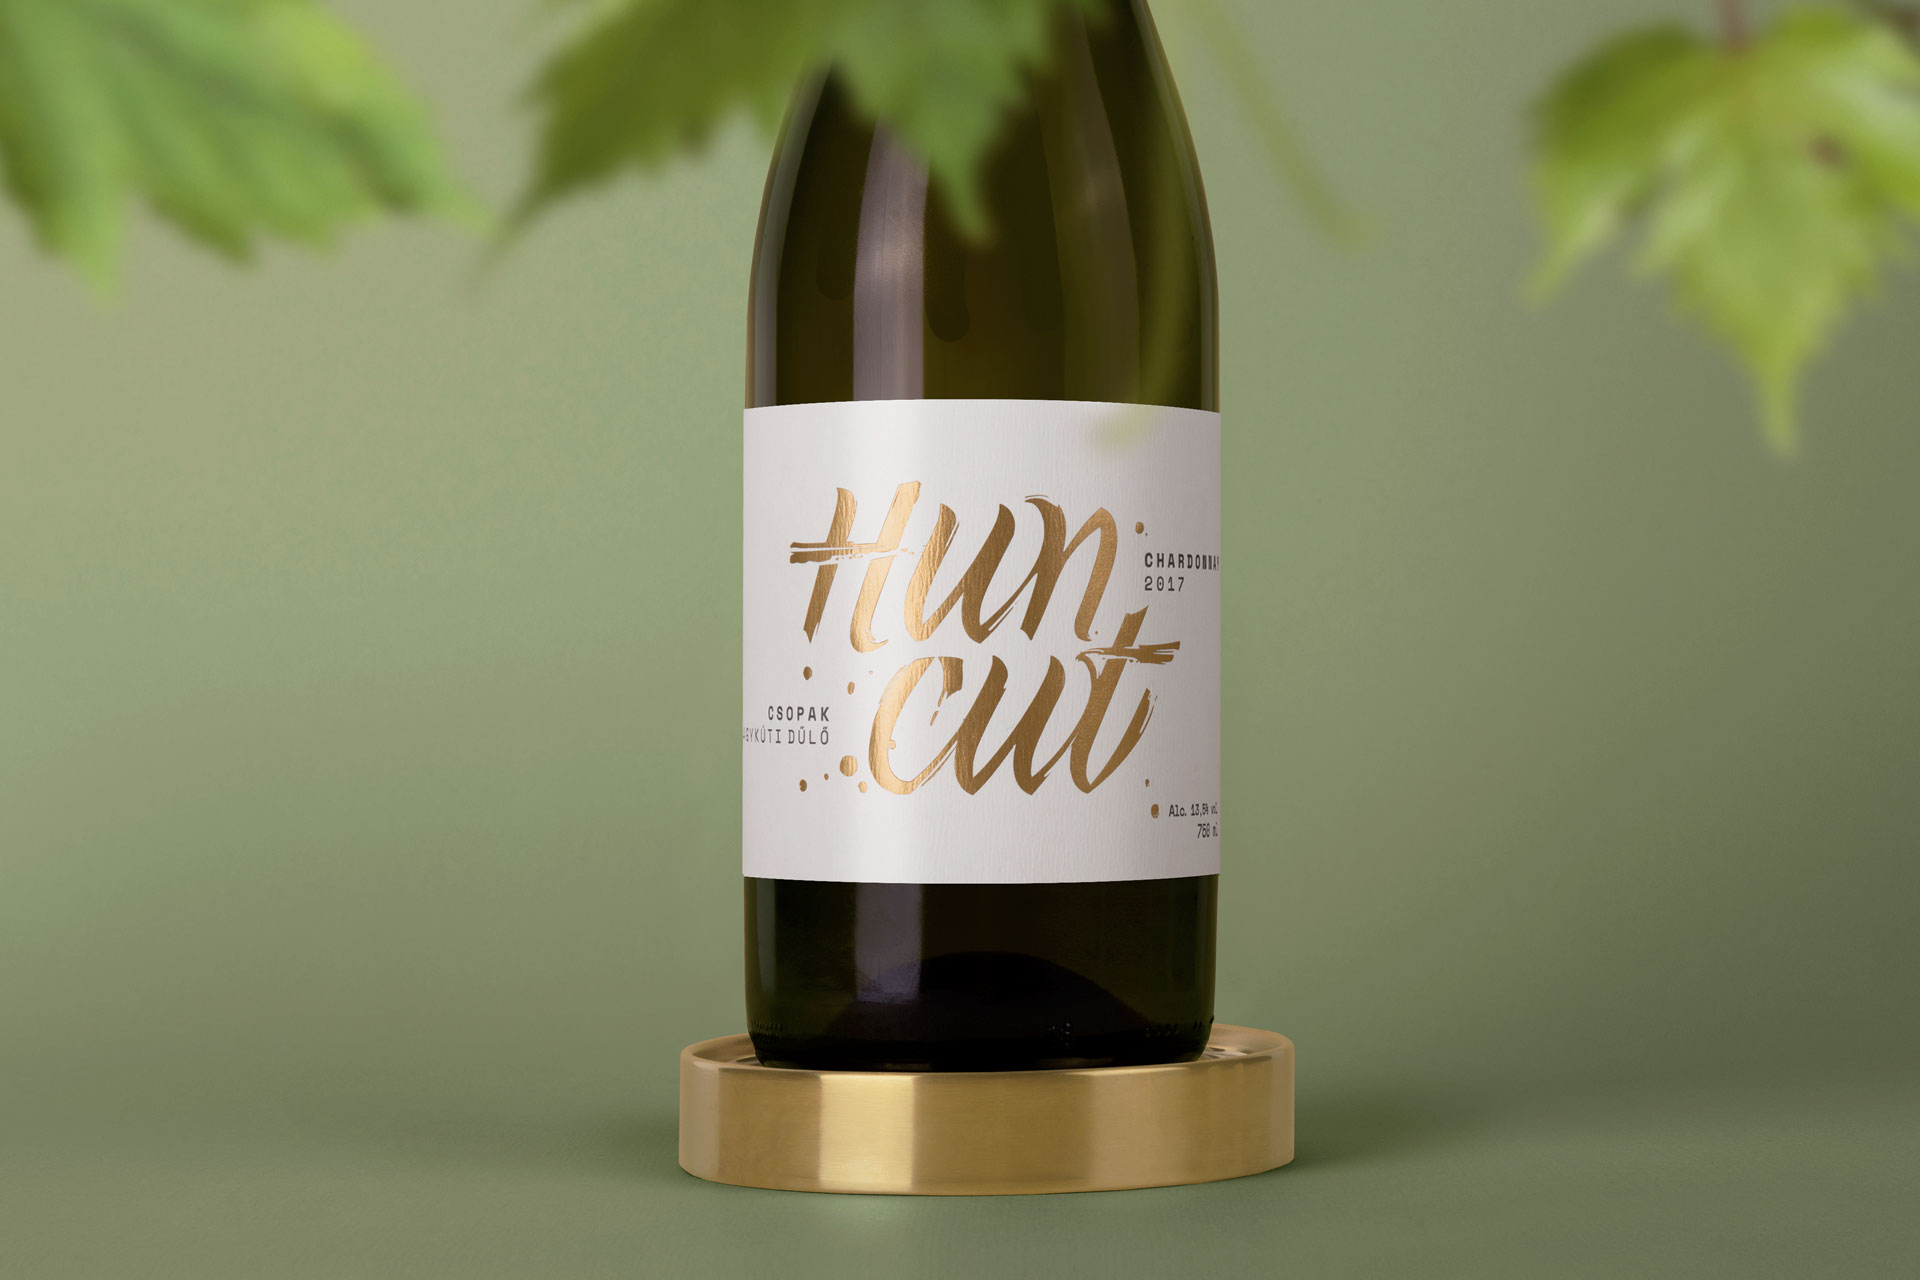 Huncut Wine